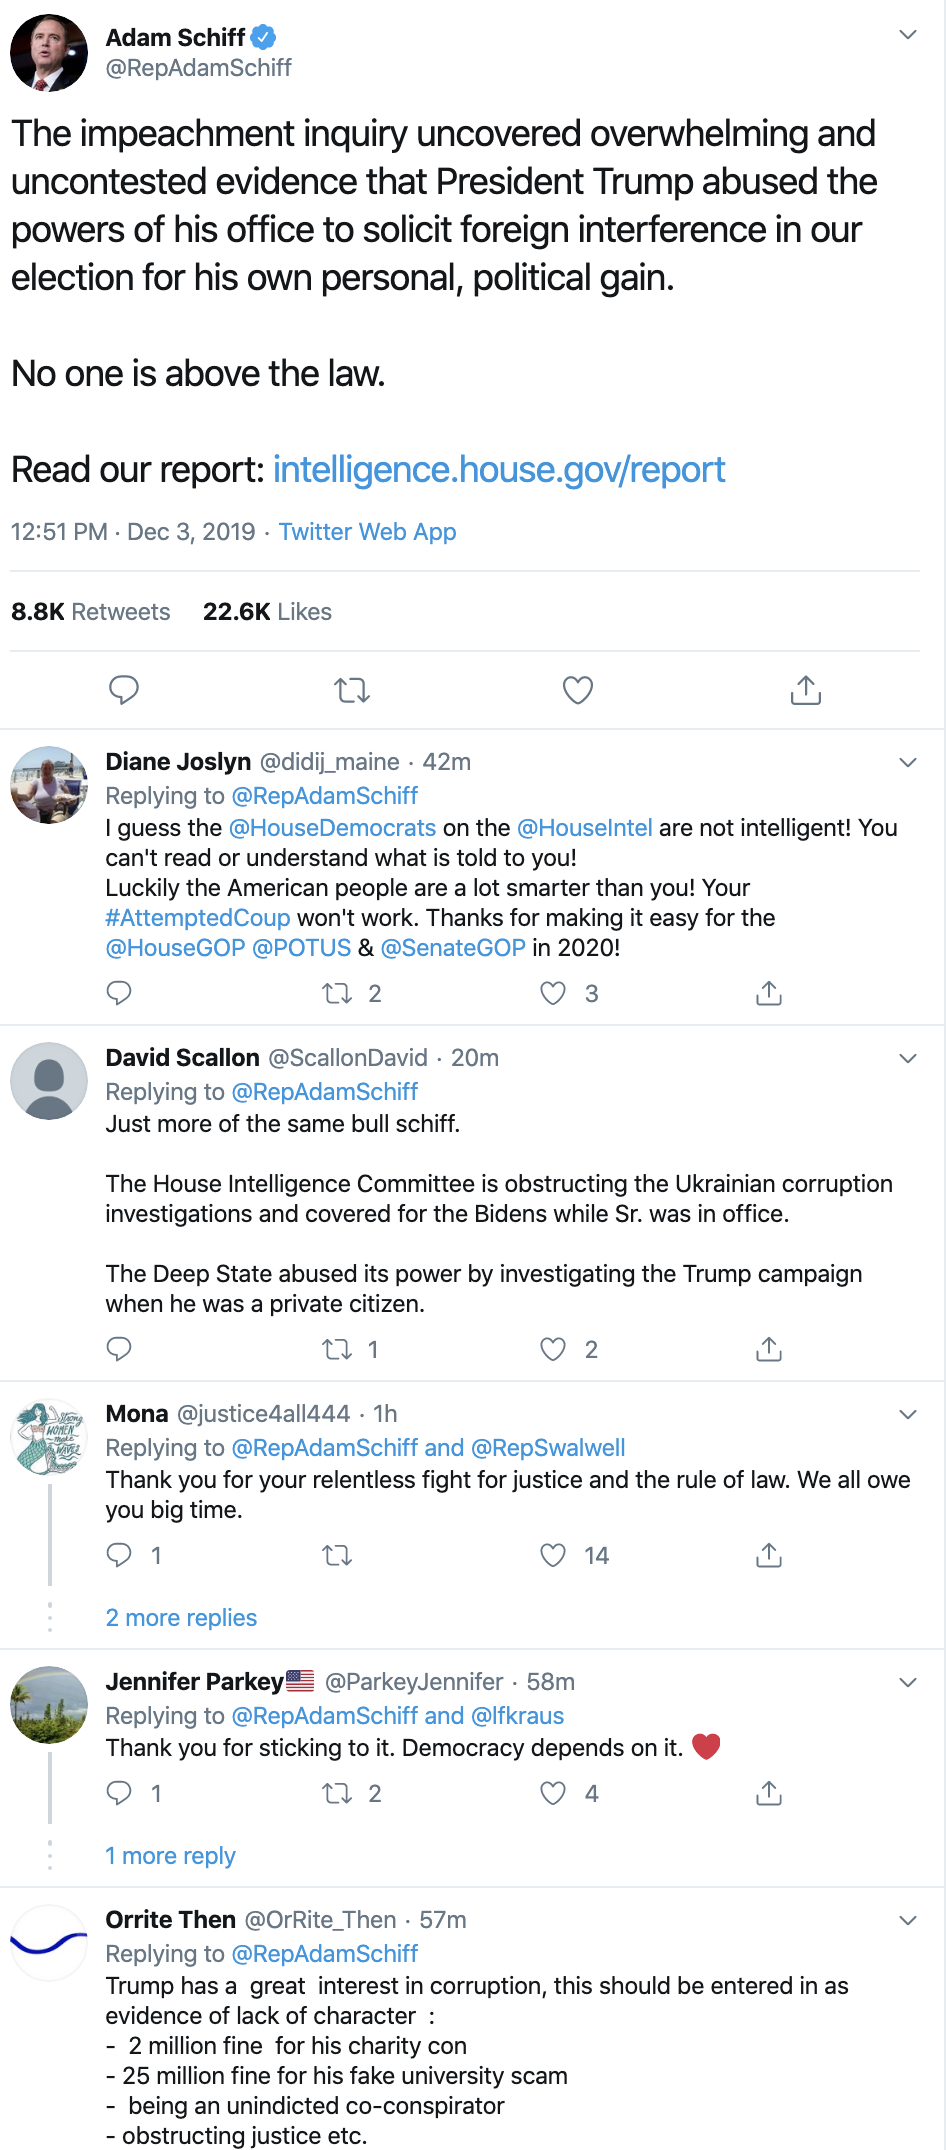 Screen-Shot-2019-12-03-at-2.16.01-PM-1 Schiff Uncovers Evidence Of Trump's Scheme To Cheat In 2020 Election Featured Impeachment Investigation National Security Top Stories